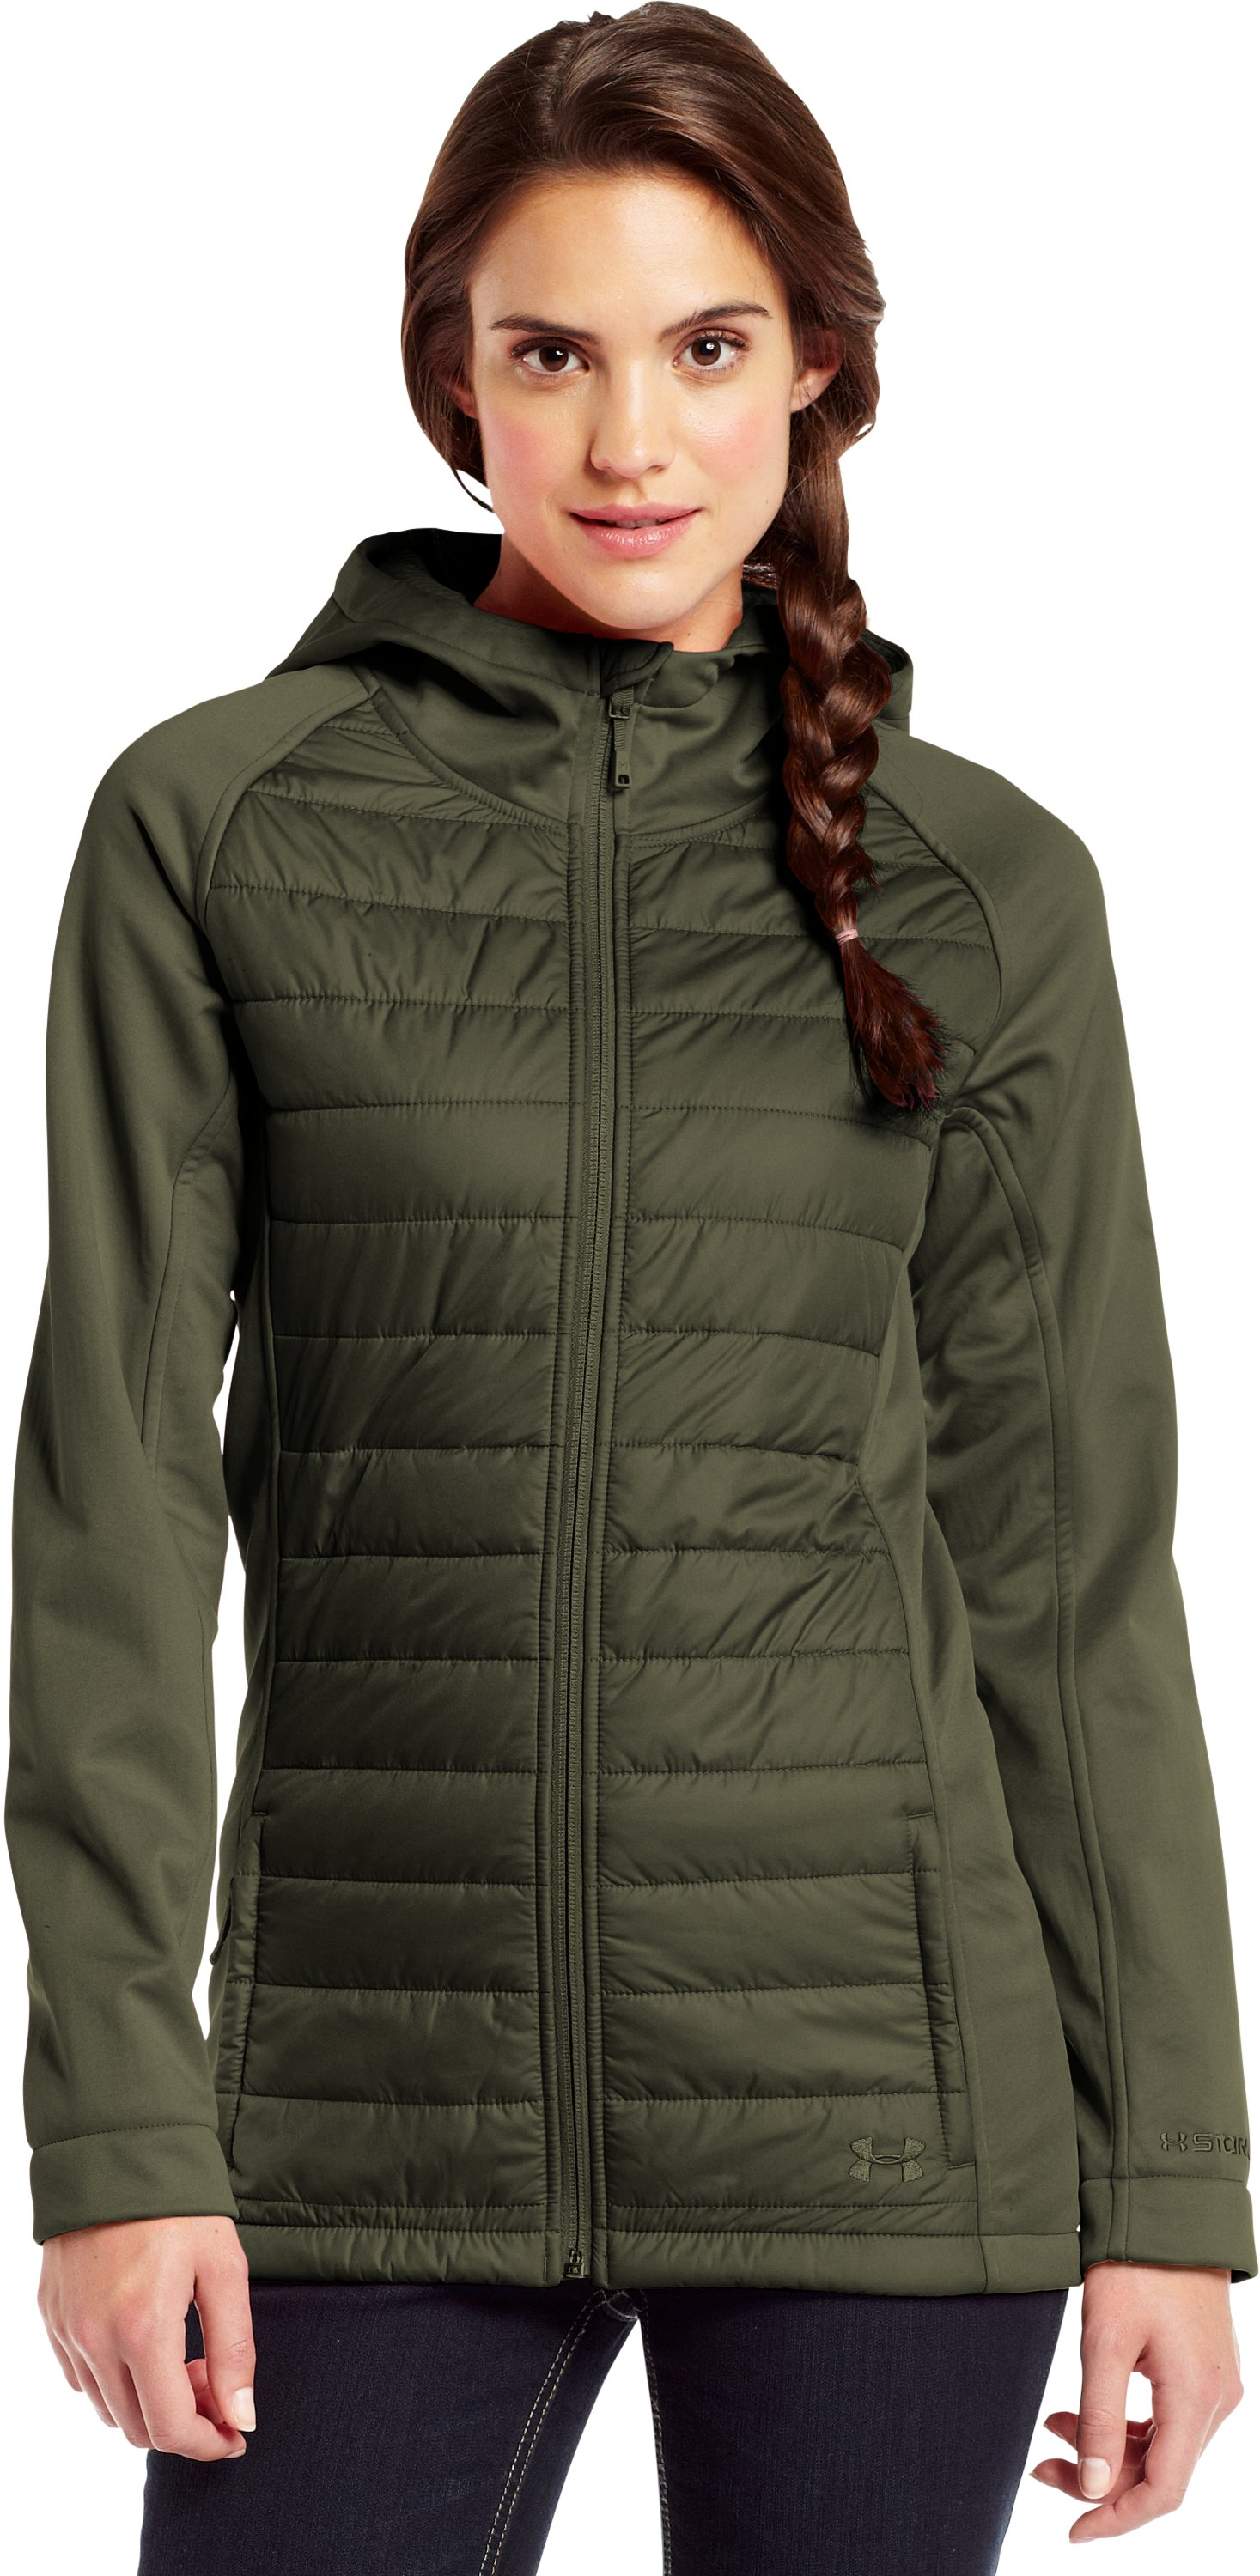 Women's ColdGear® Infrared Werewolf Jacket, GREENHEAD, Front